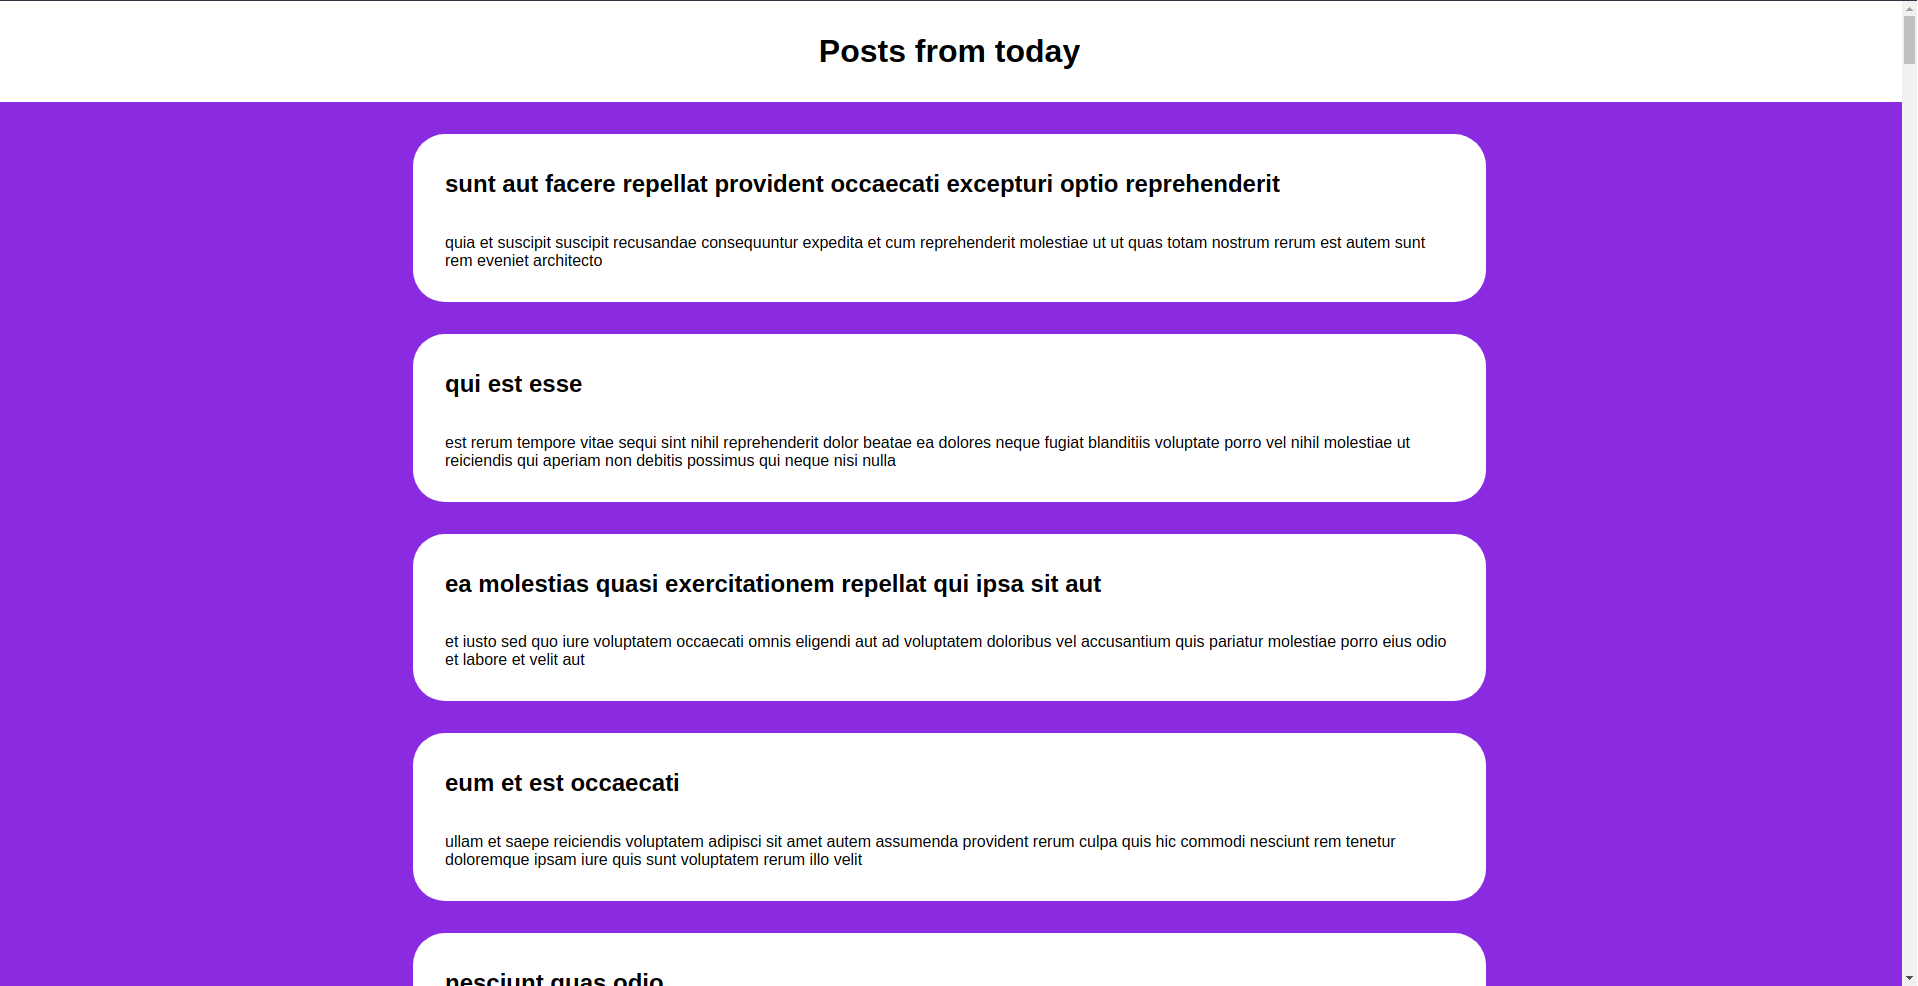 this image shows a screenshot of a few posts that have been fetched from jsonplaceholder